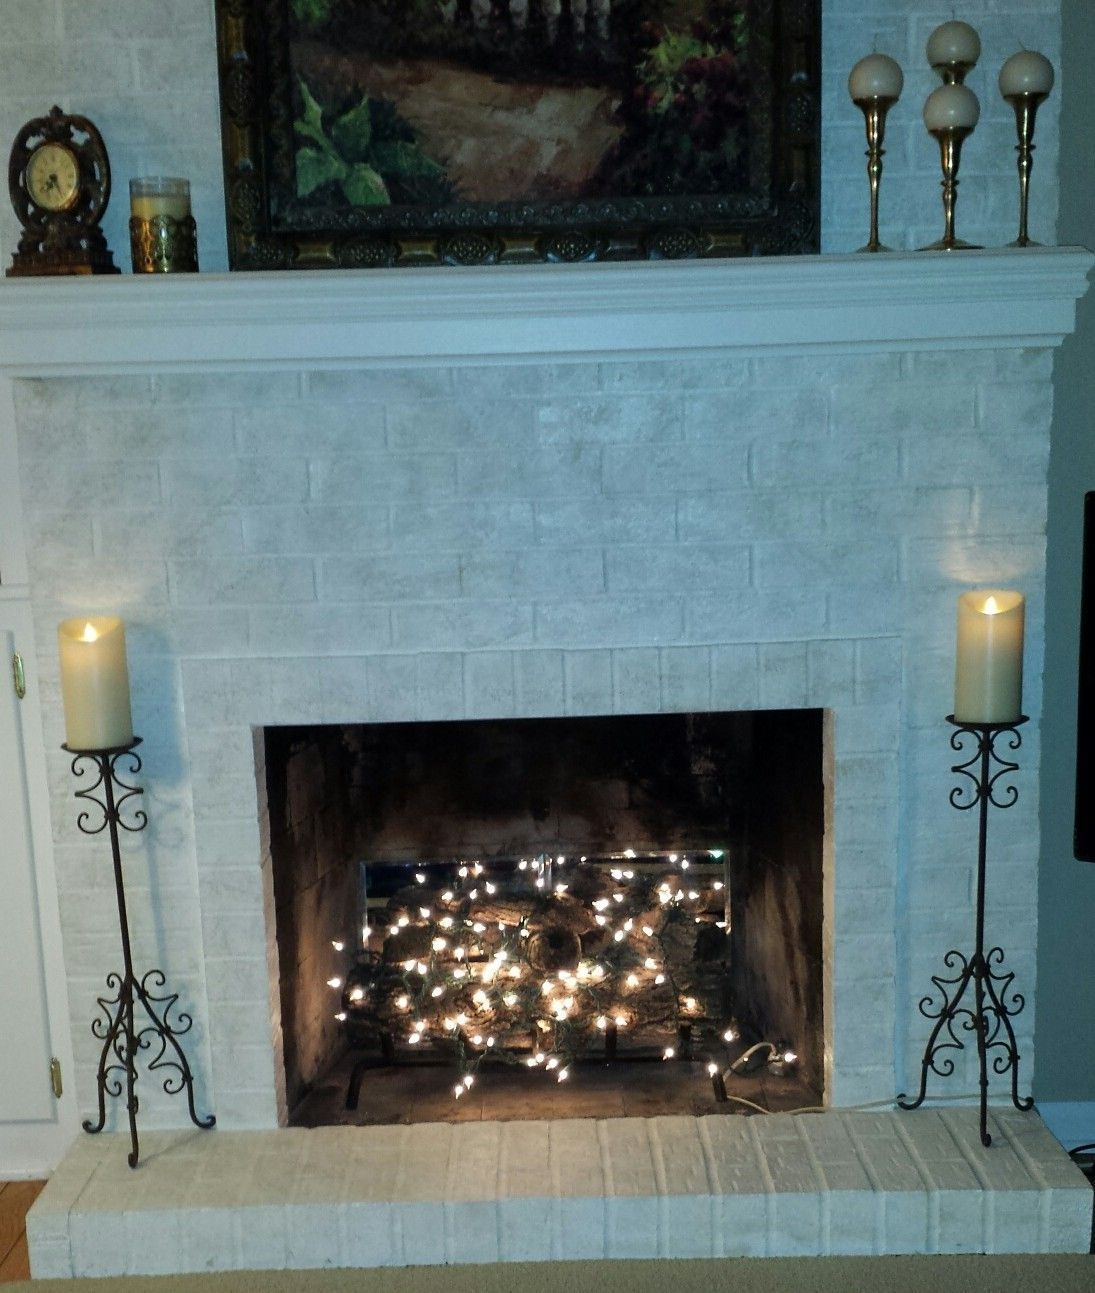 Fireplace & Lighting   Fireplace lighting, Candles in fireplace ...